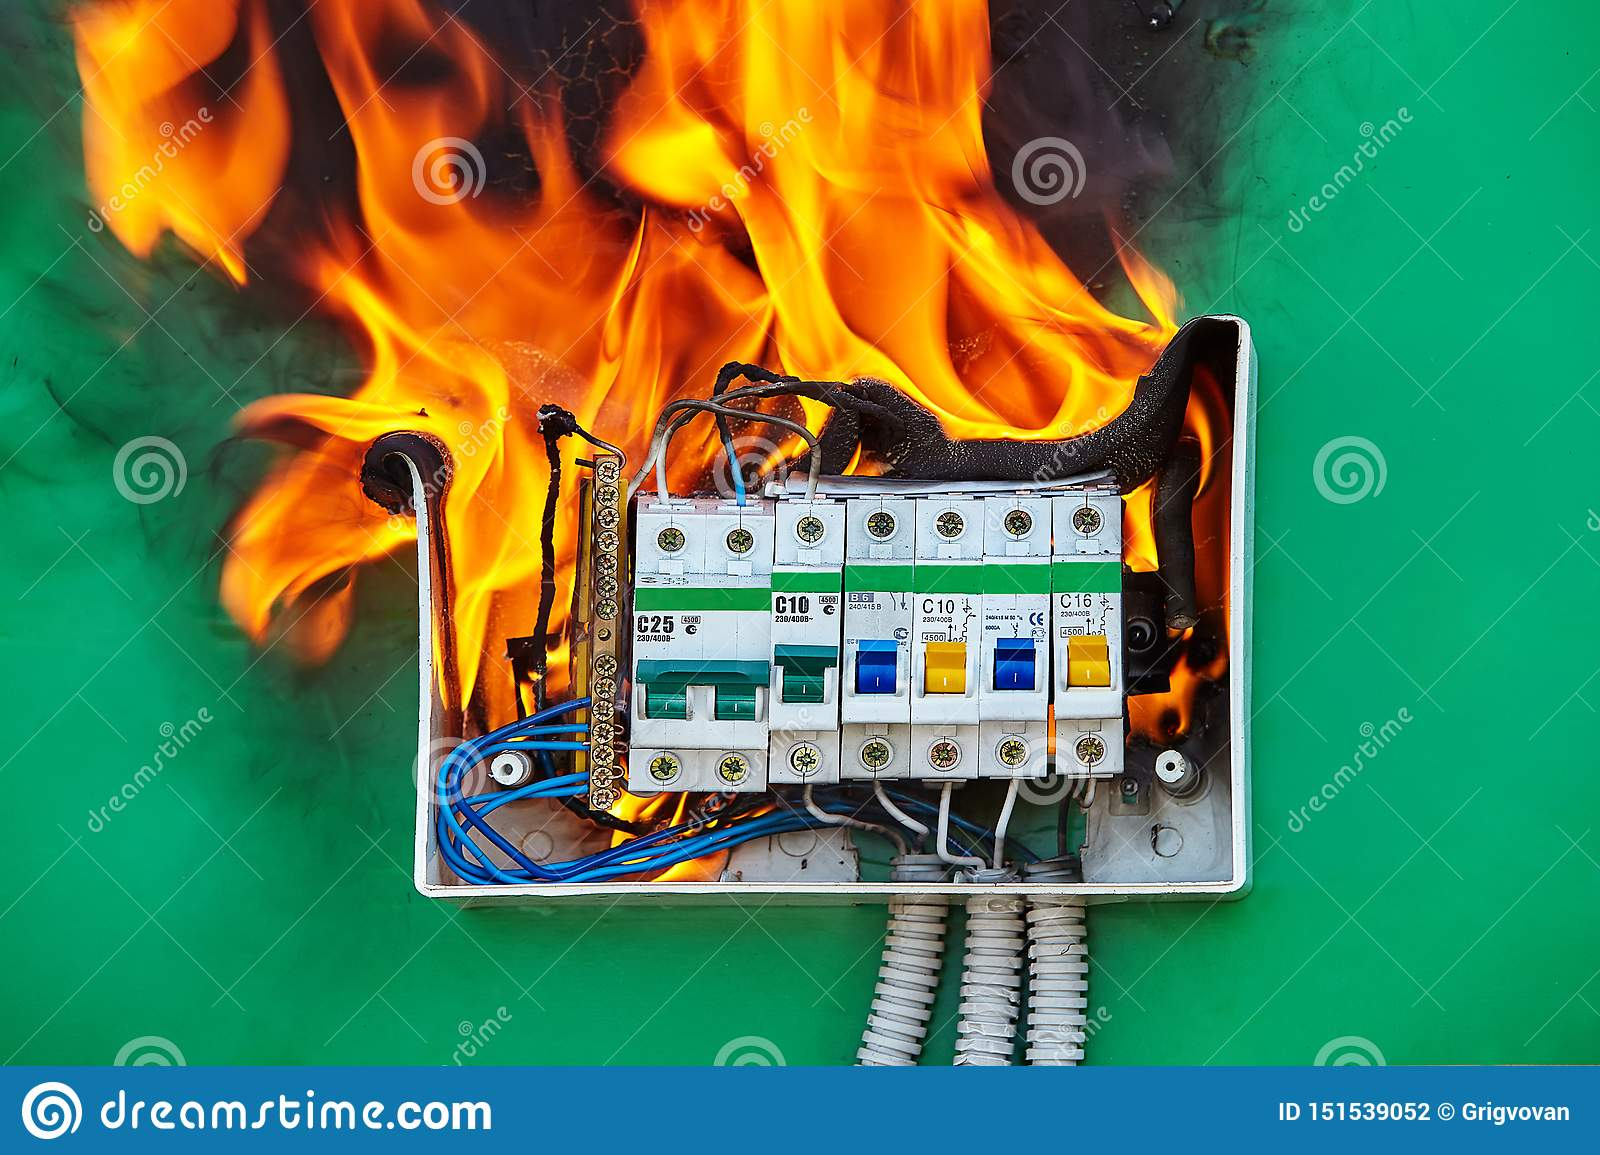 Loose Wires Caused Fire Inside Electrical Fuse Box Stock Photo - Image of  combustion, house: 151539052Dreamstime.com